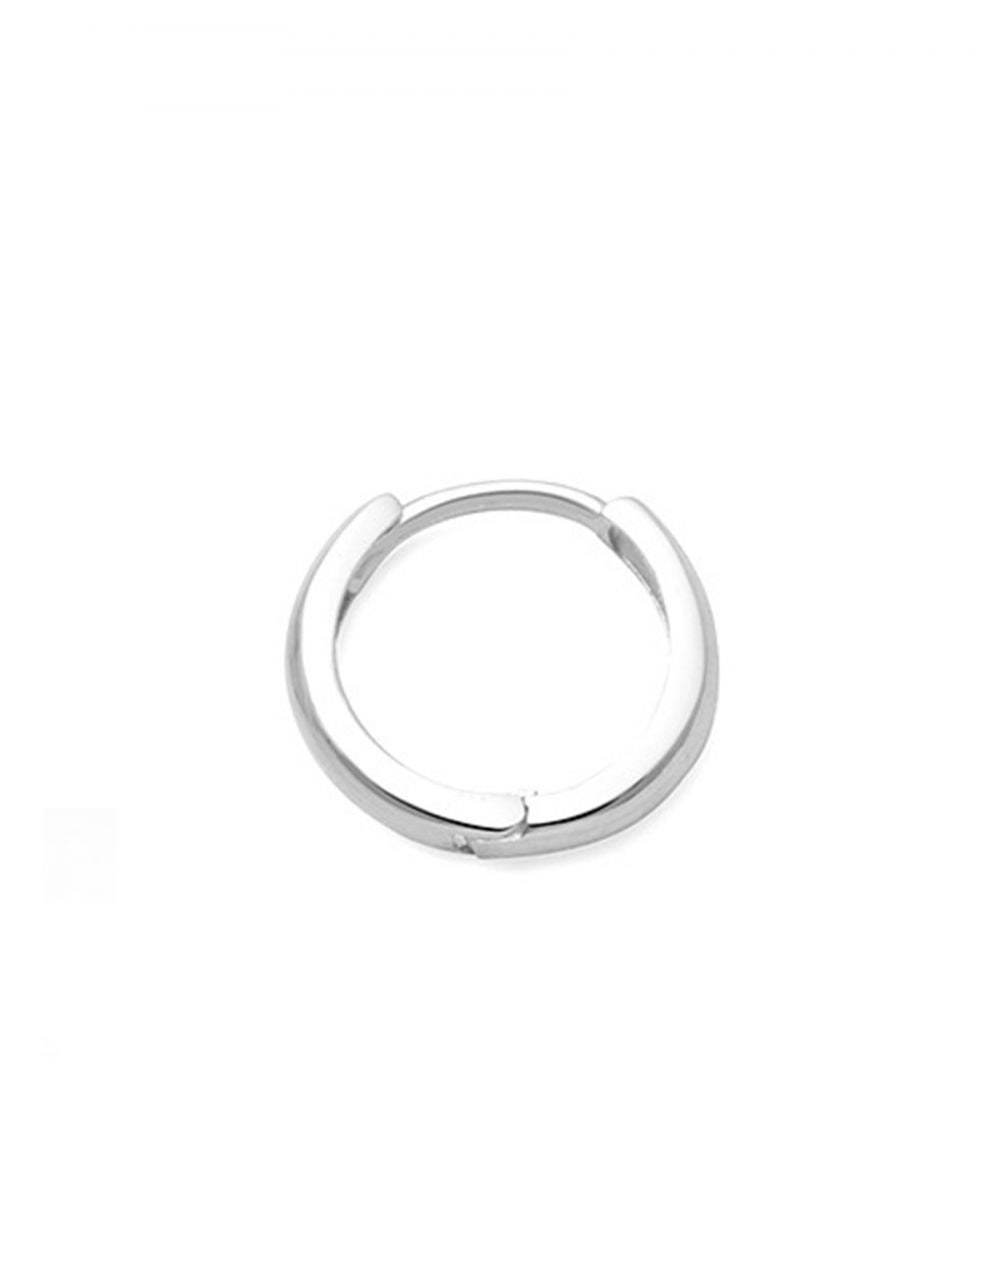 Mini Gold Hoop Piercing<br /><i><small>14K White Gold</small></i><br />